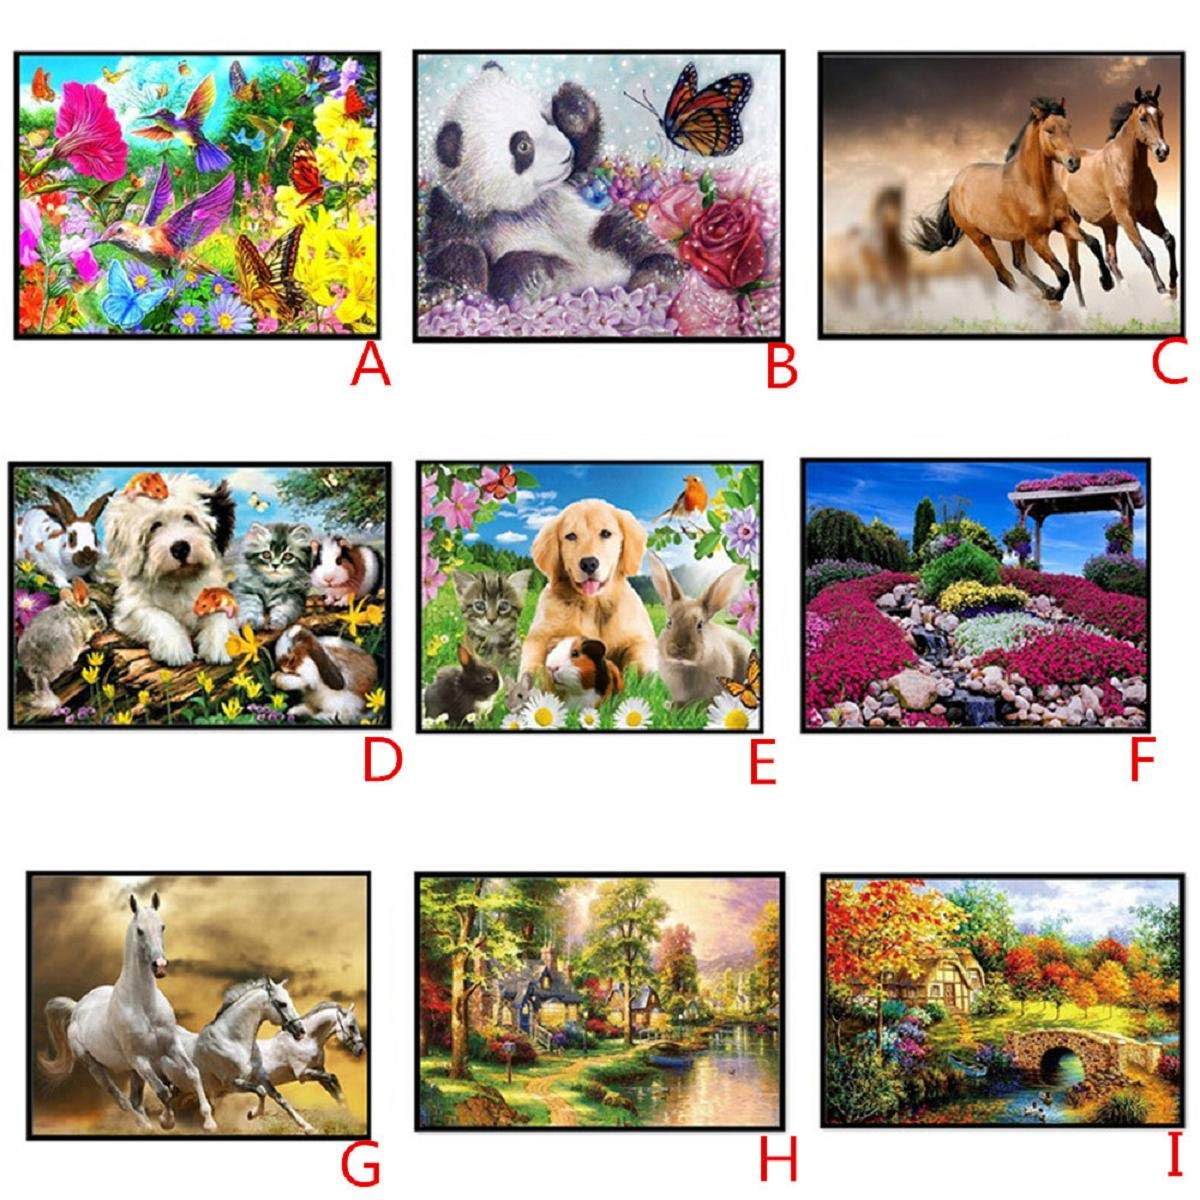 DIY 5D Diamond Painting Dartphew by Number Kits, Crystal Rhinestone Embroidery Pictures Arts Craft for Home Wall Decor - Lovely Dogs Cats Horses Animals - Reduces Eye Strain by Dartphew DIY 5D Diamond Painting (Image #3)